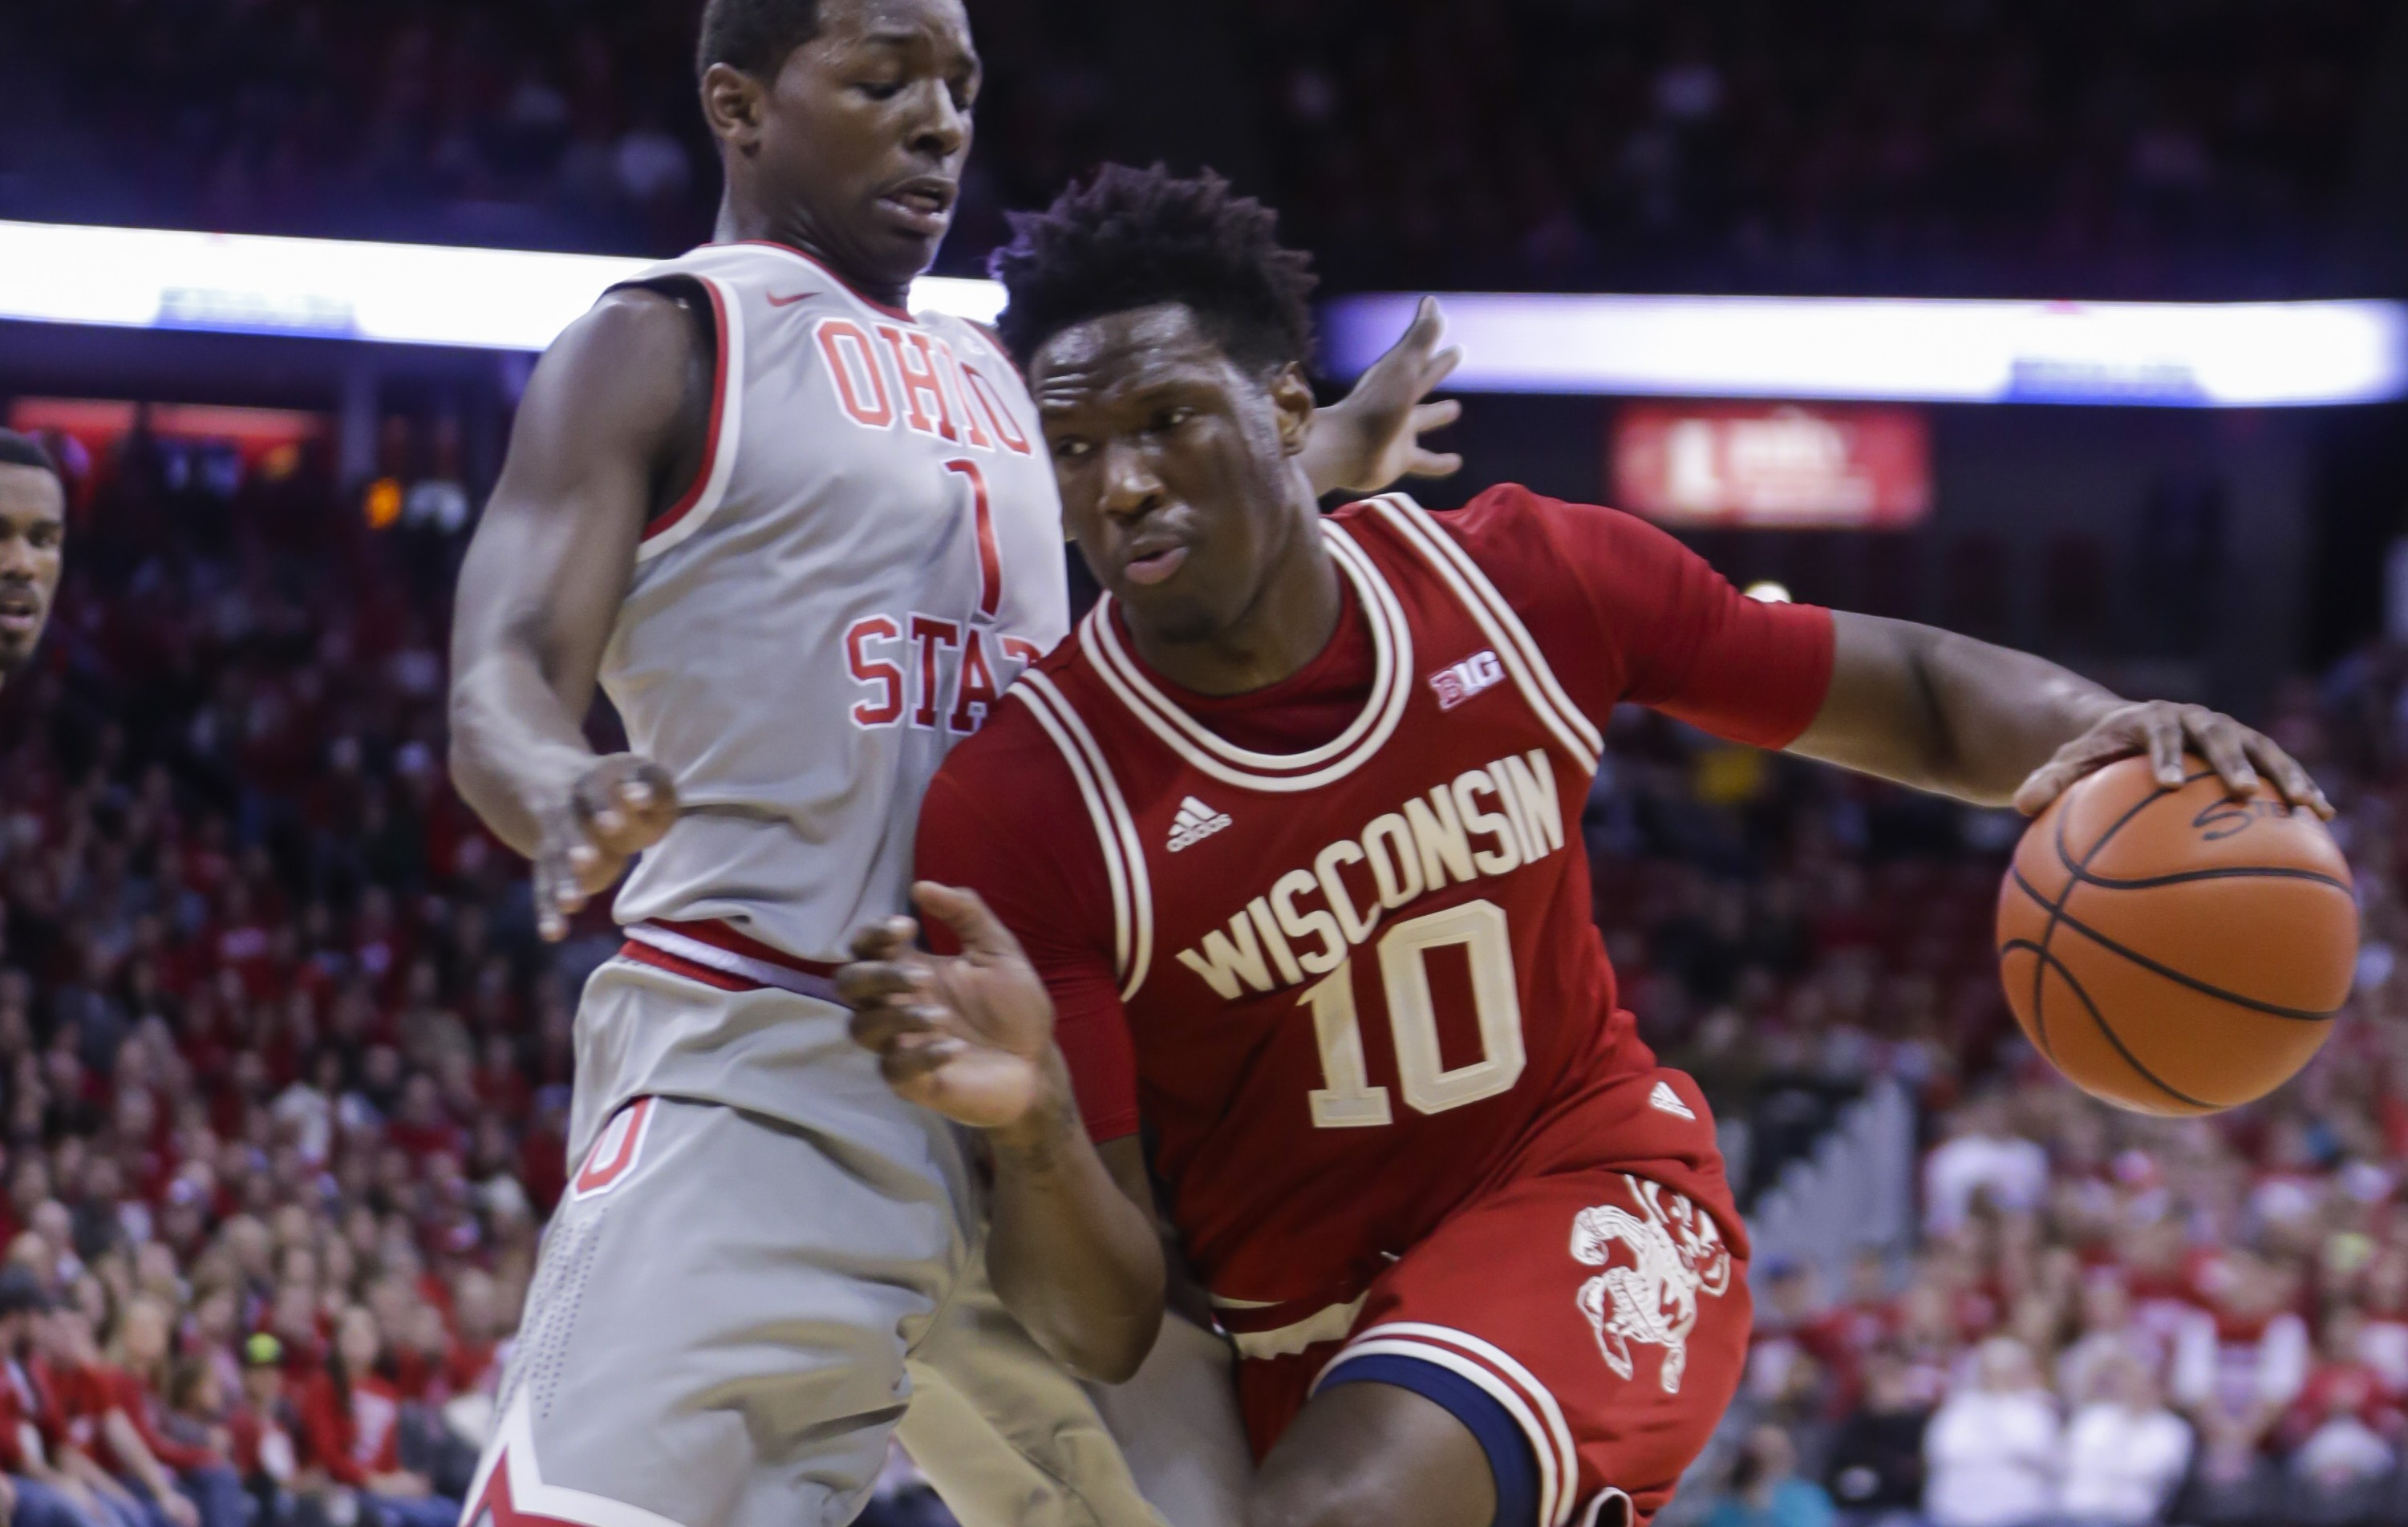 Wisconsin's Nigel Hayes (10) drives on Ohio State's Jae'Sean Tate (1) during the second half of an NCAA college basketball game Thursday, Feb. 4, 2016, in Madison, Wis. Hayes had a team-high 21 points in Wisconsin's 79-68 win. (AP Photo/Andy Manis)